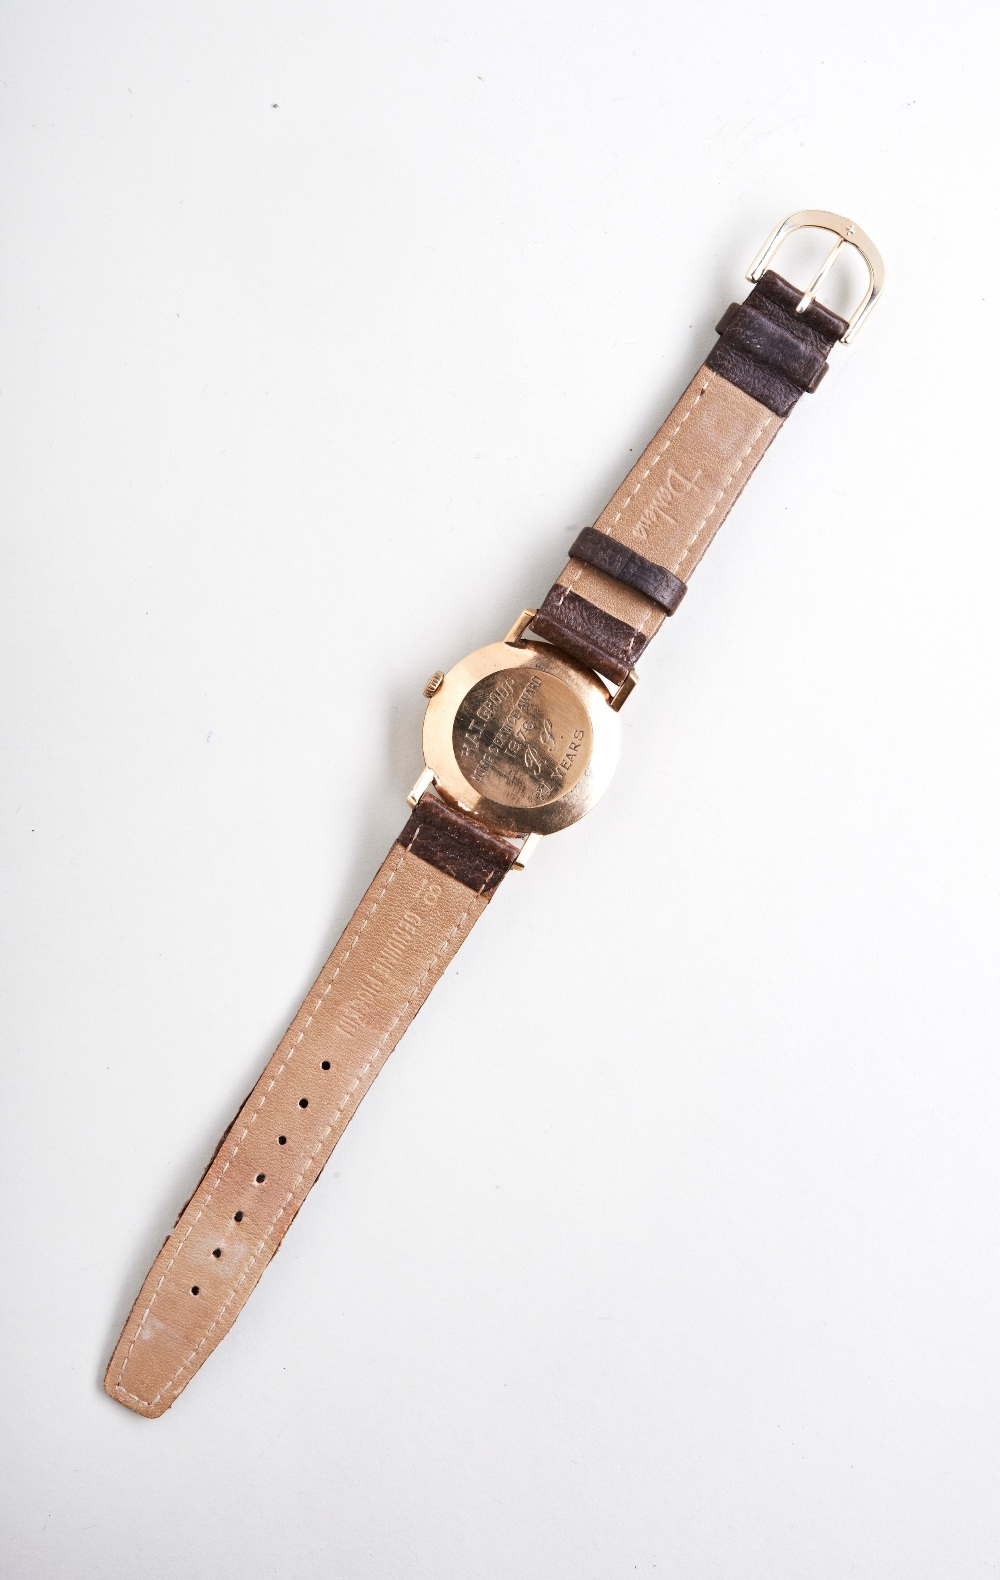 TISSOT 9CT MAN'S WRISTWATCH, 1970s, the plain slivered dial with baton numerals and later leather - Image 3 of 3